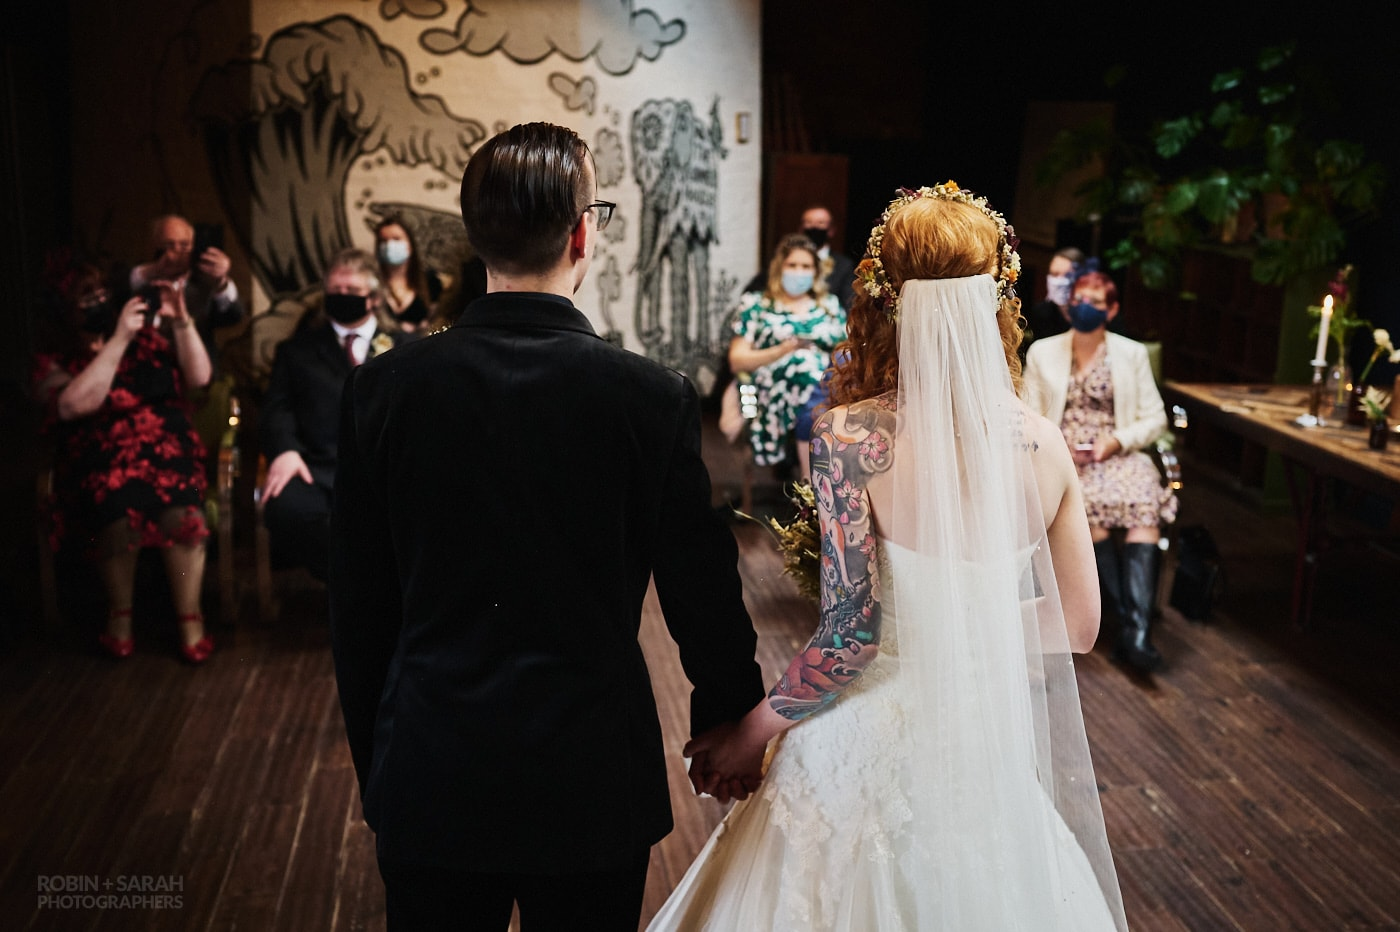 Newly married bride and groom turn to face their wedding guests